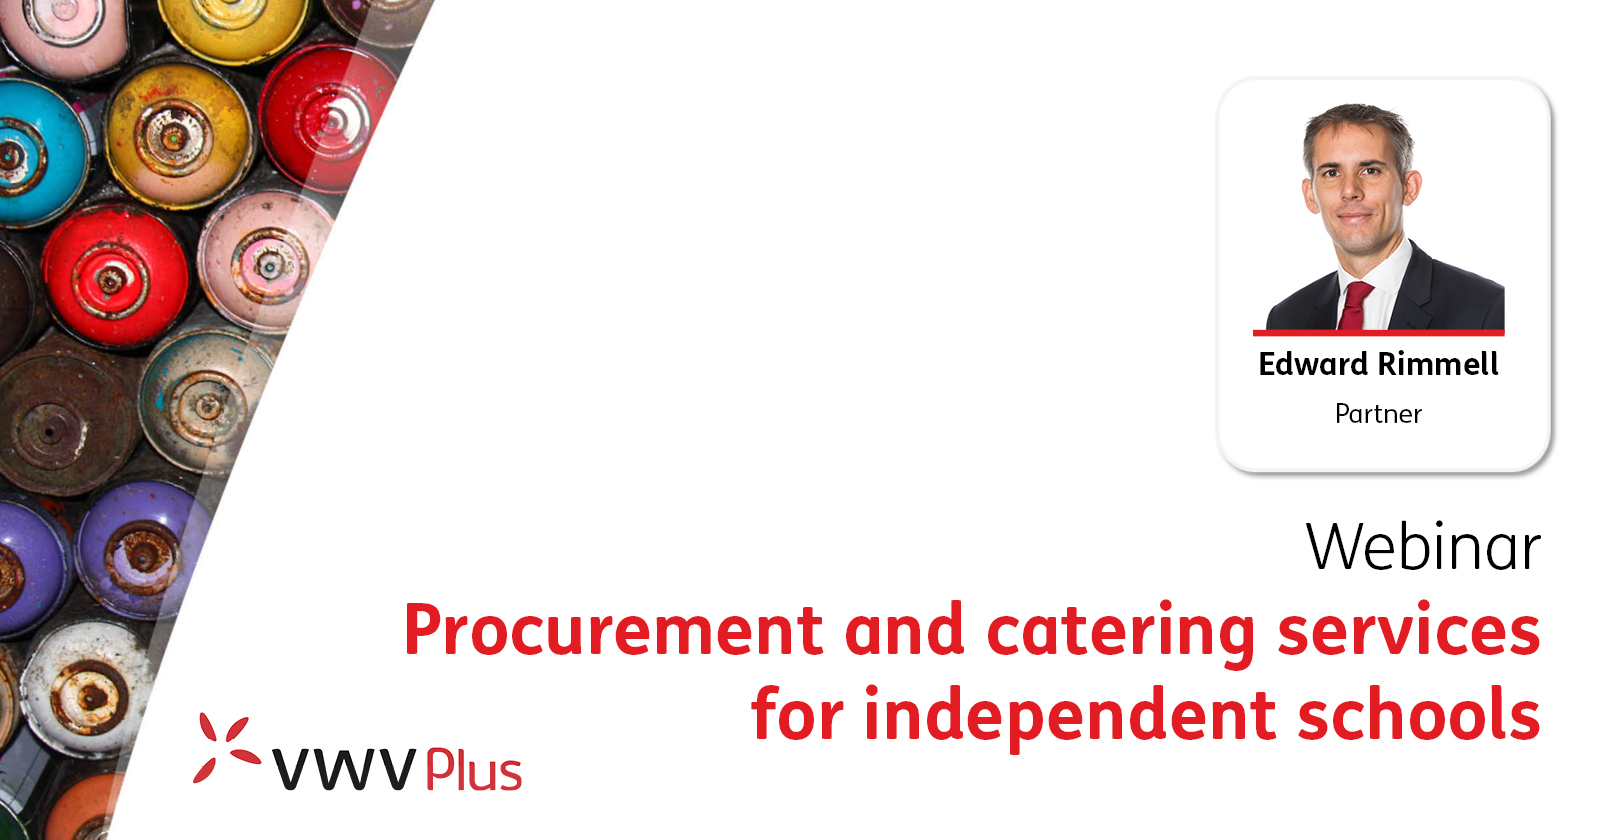 Procurement and catering for independent schools | VWV Plus